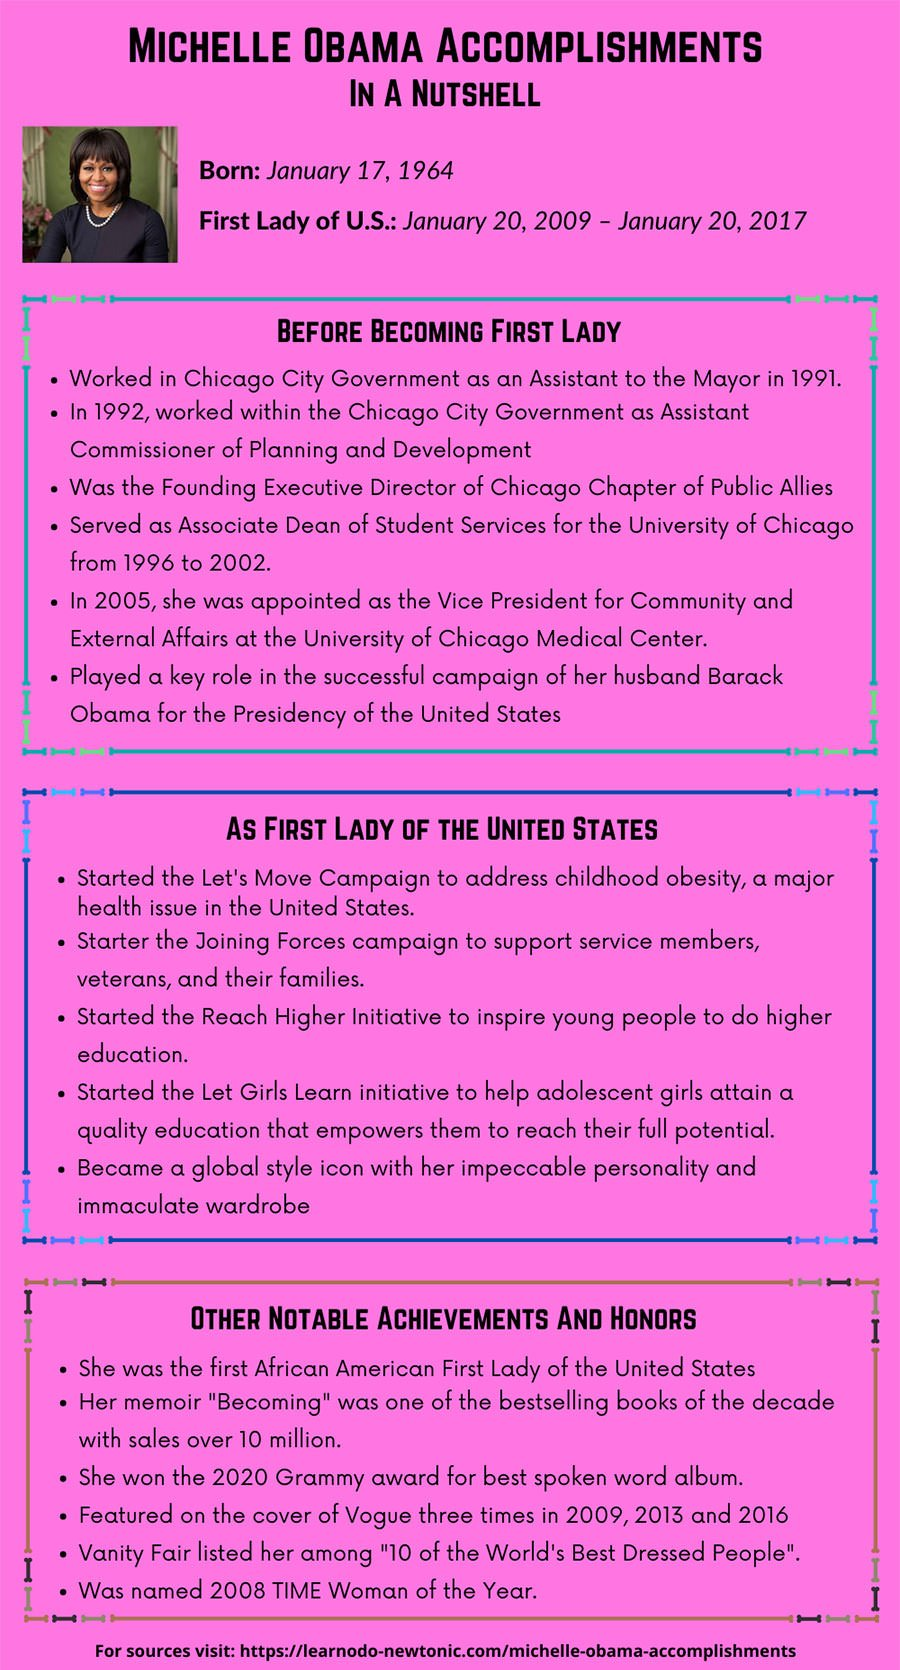 Michelle Obama Accomplishments - In A Nutshell